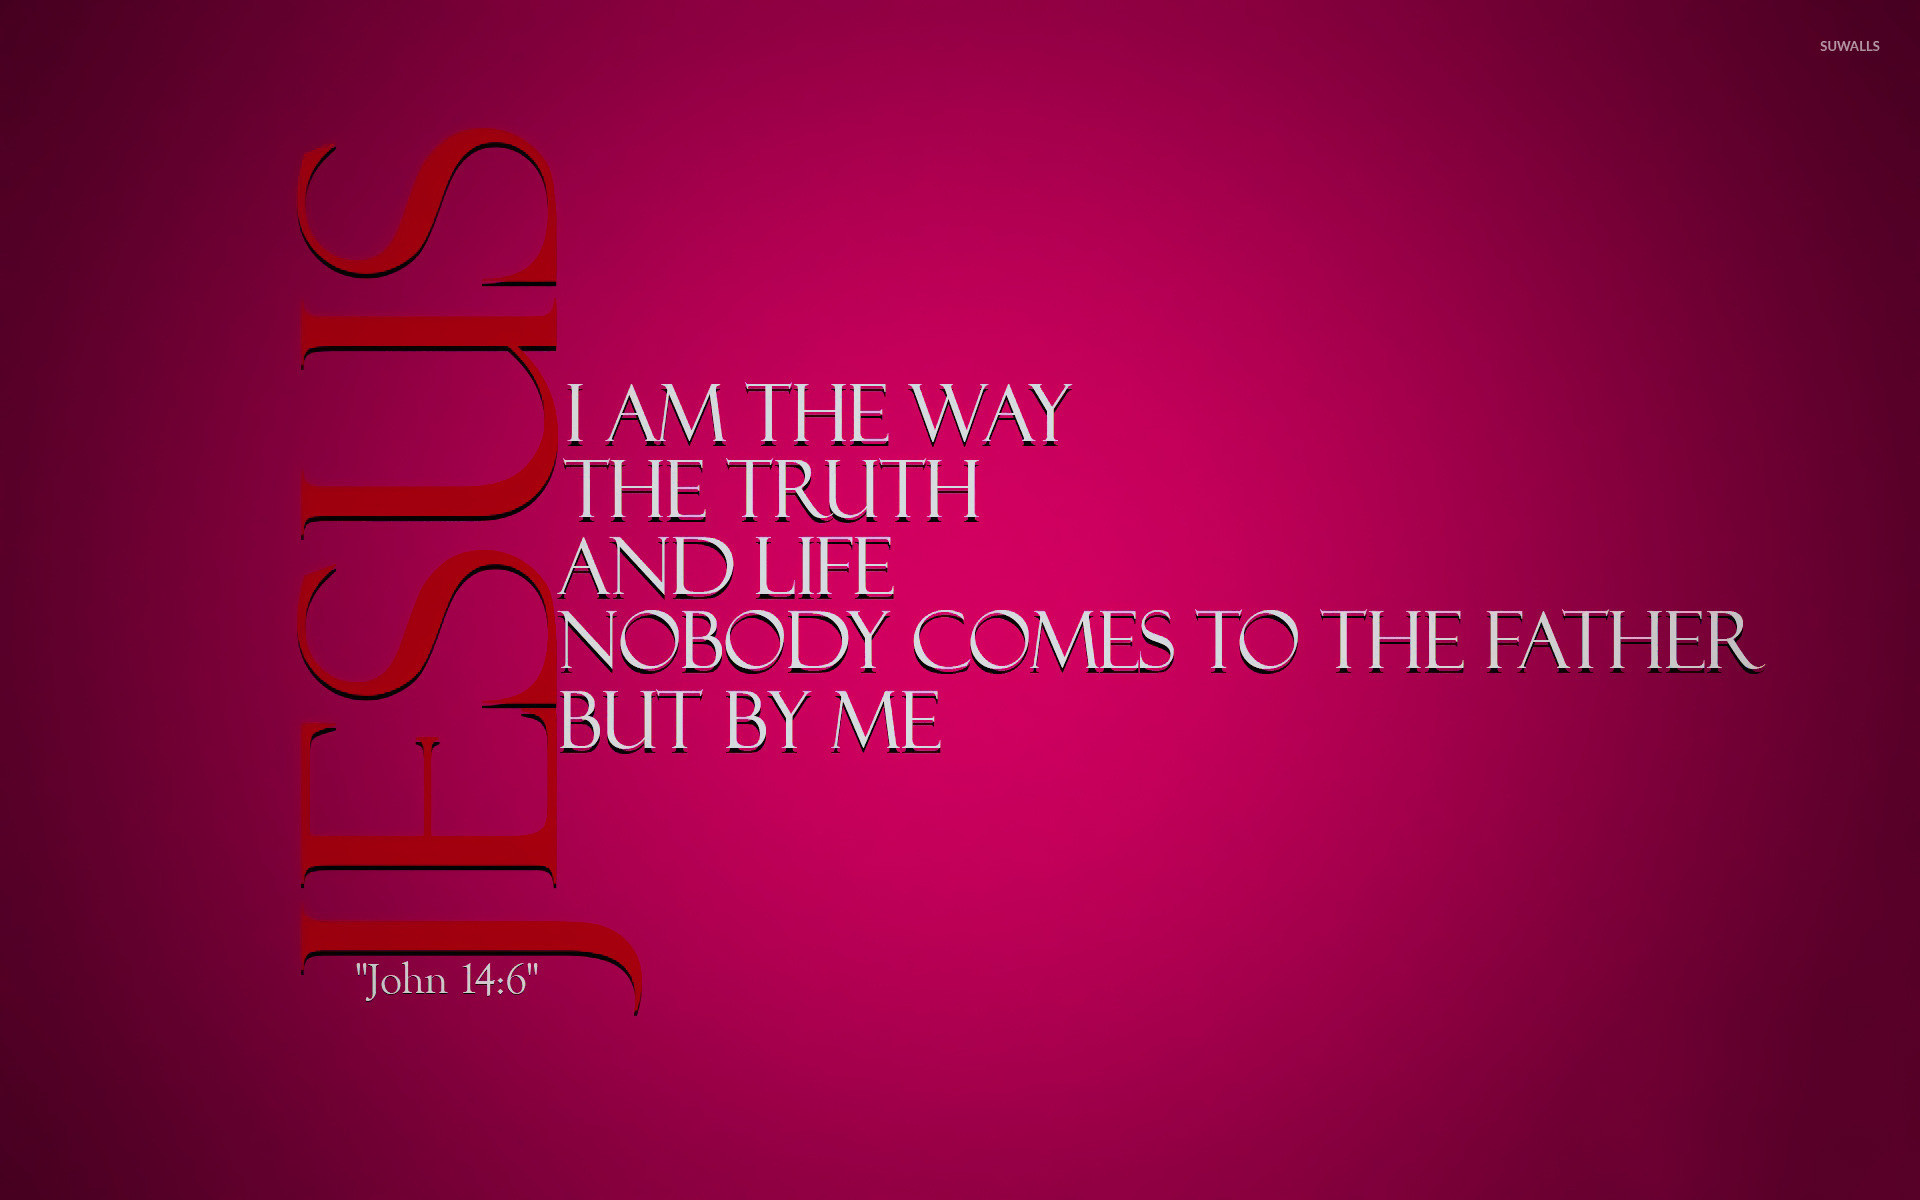 Bible Quote Wallpaper Apk Christian Wallpaper With Scripture 183 ①